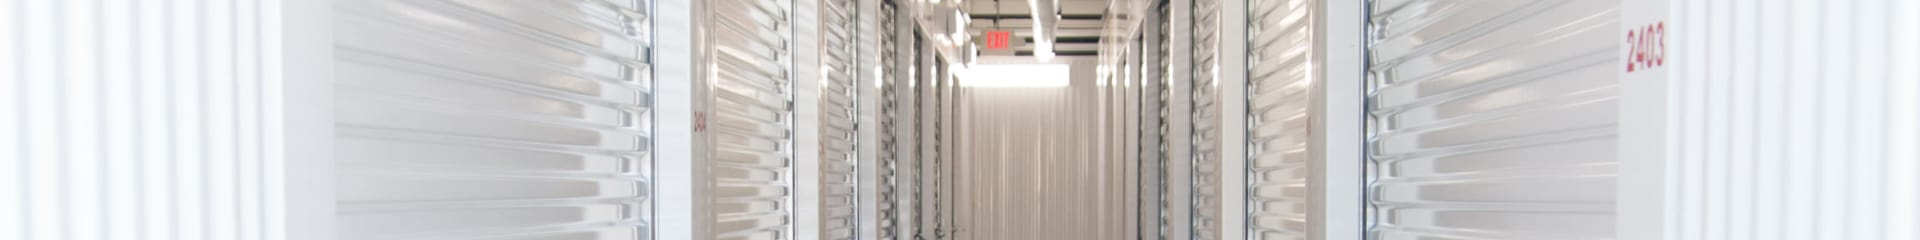 Climate-controlled units at 1-800-SELF-STORAGE.com